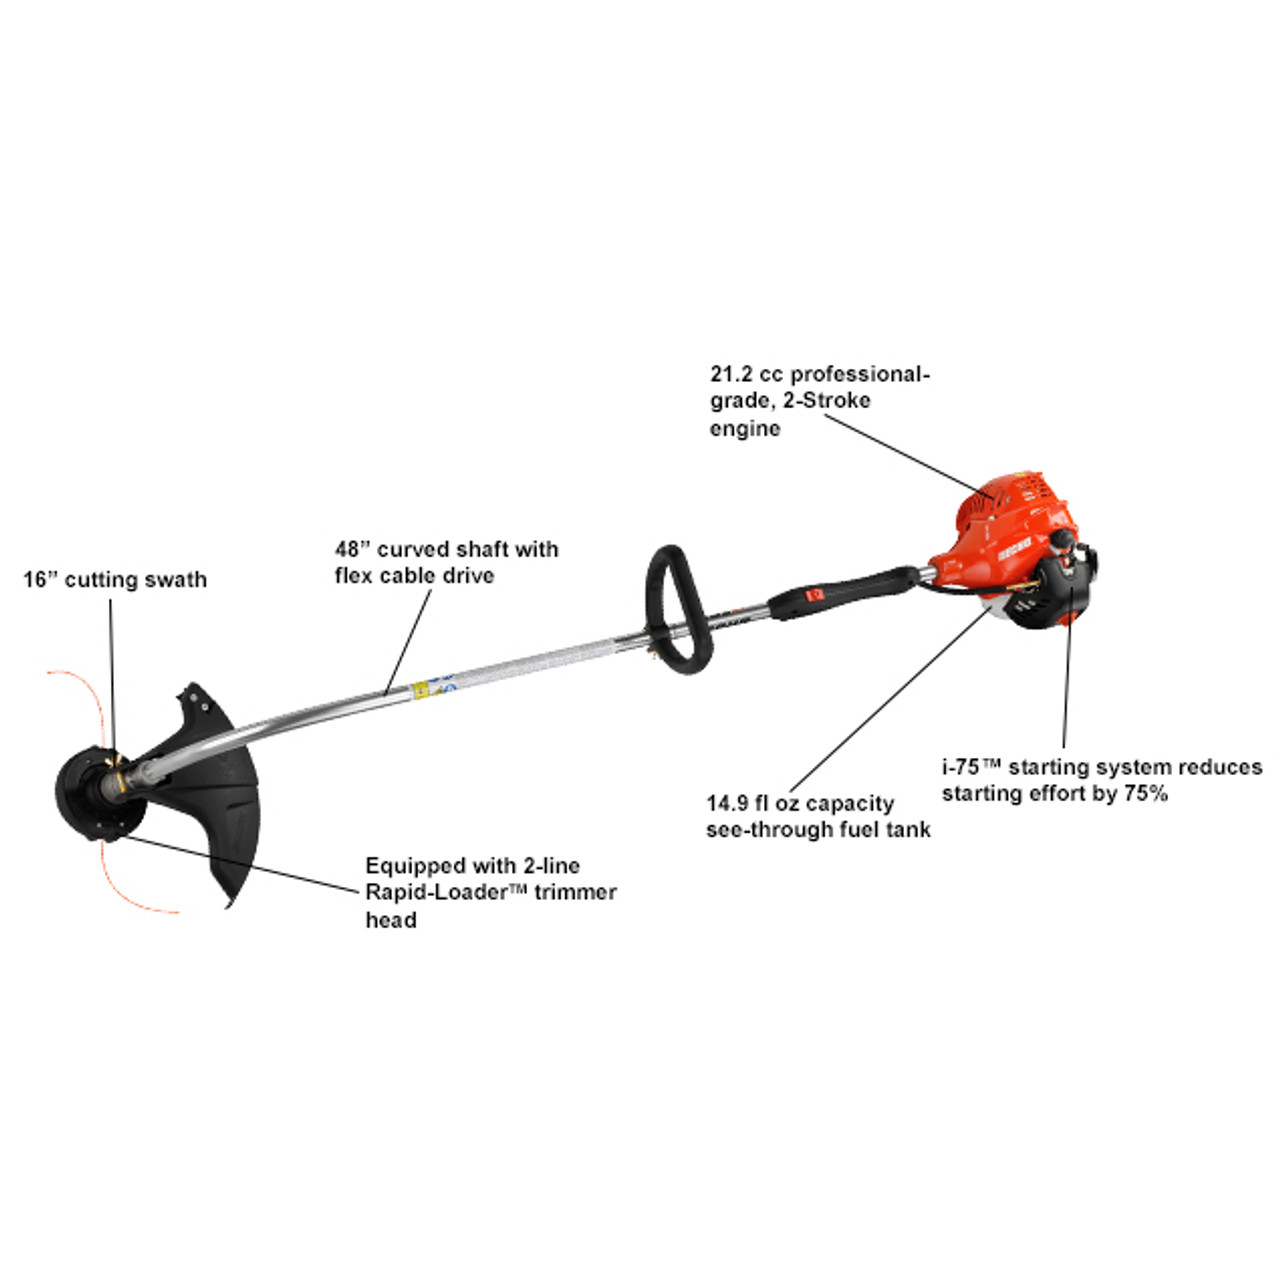 ECHO GT-225i 21.2cc 2-Stroke Curved Shaft String Trimmer w/ i-75 Easy Start Image 2